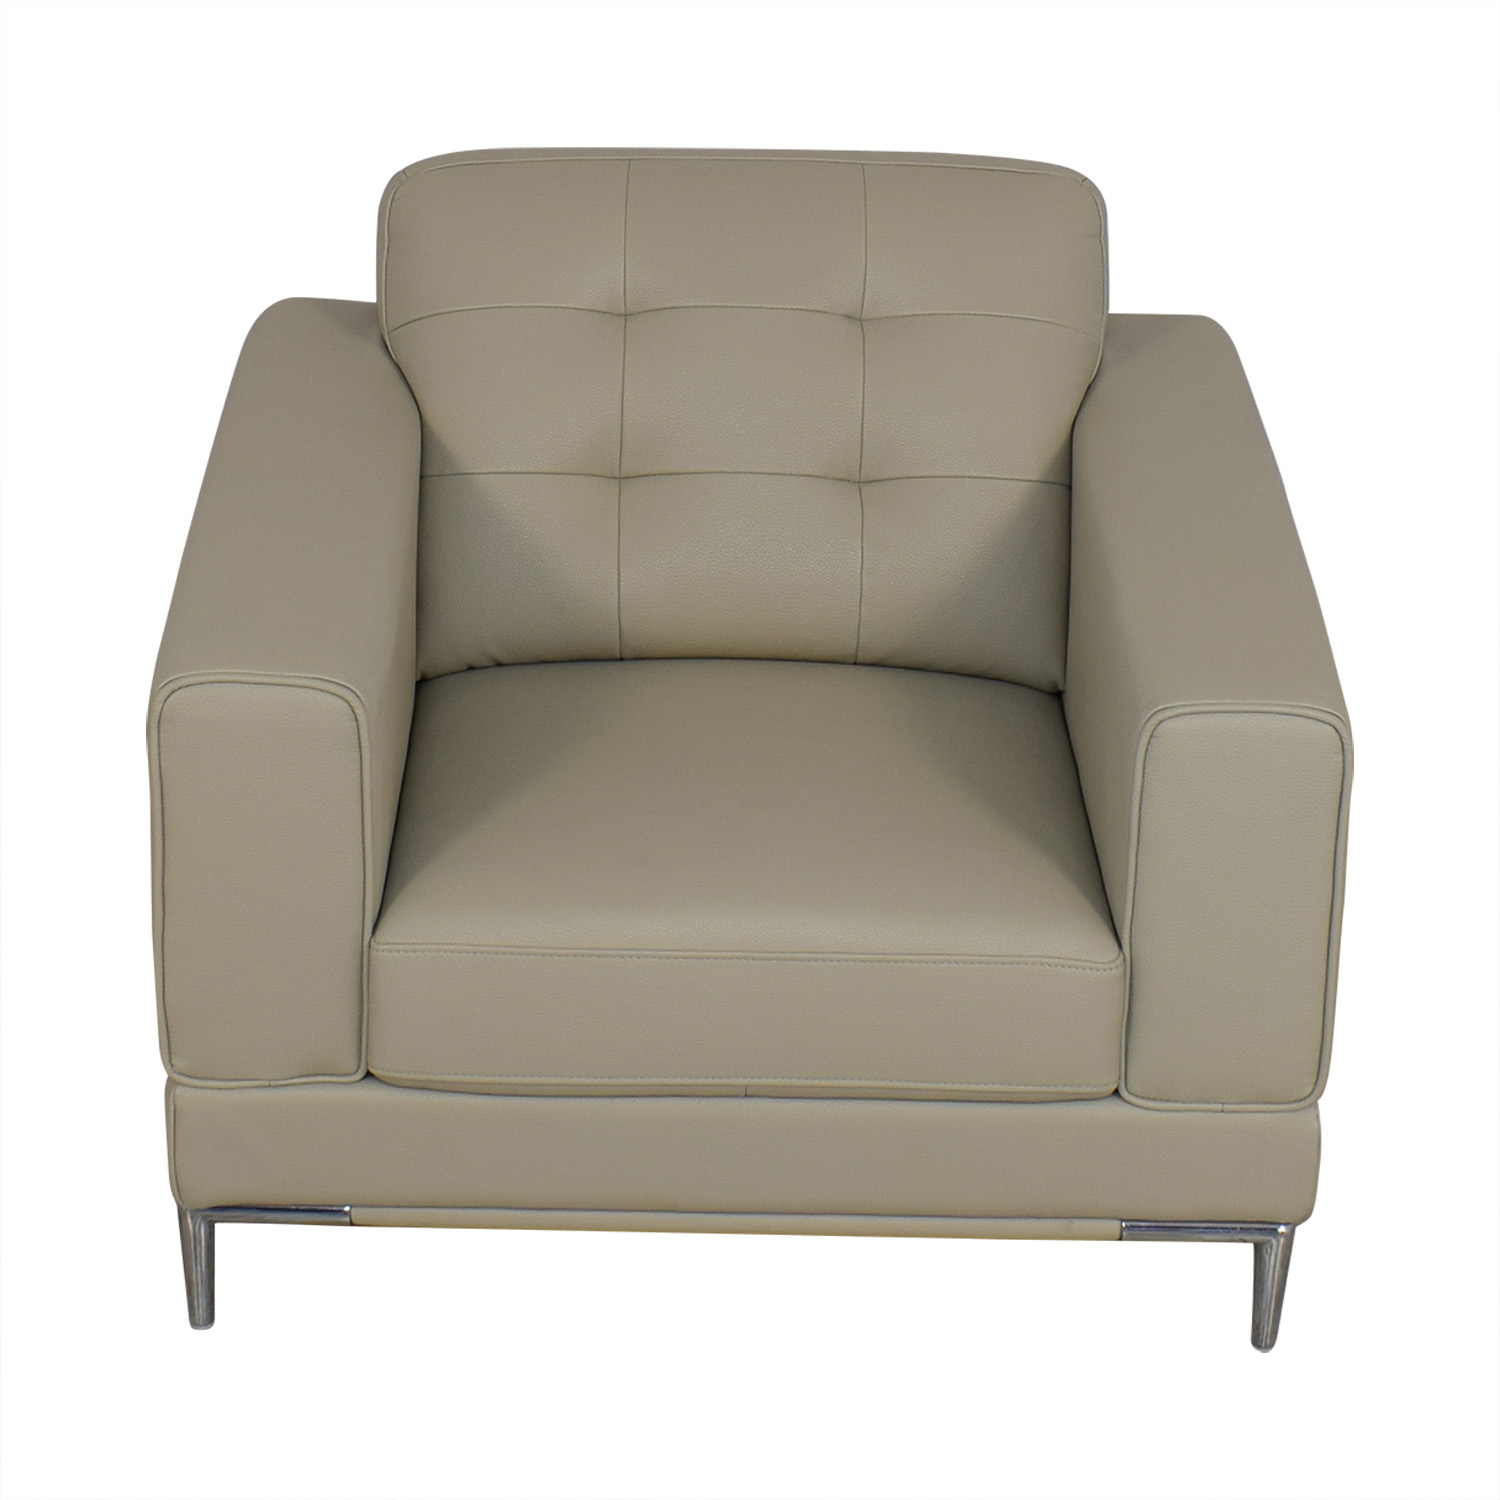 shop Modani Modern Lounge Chair Modani Accent Chairs